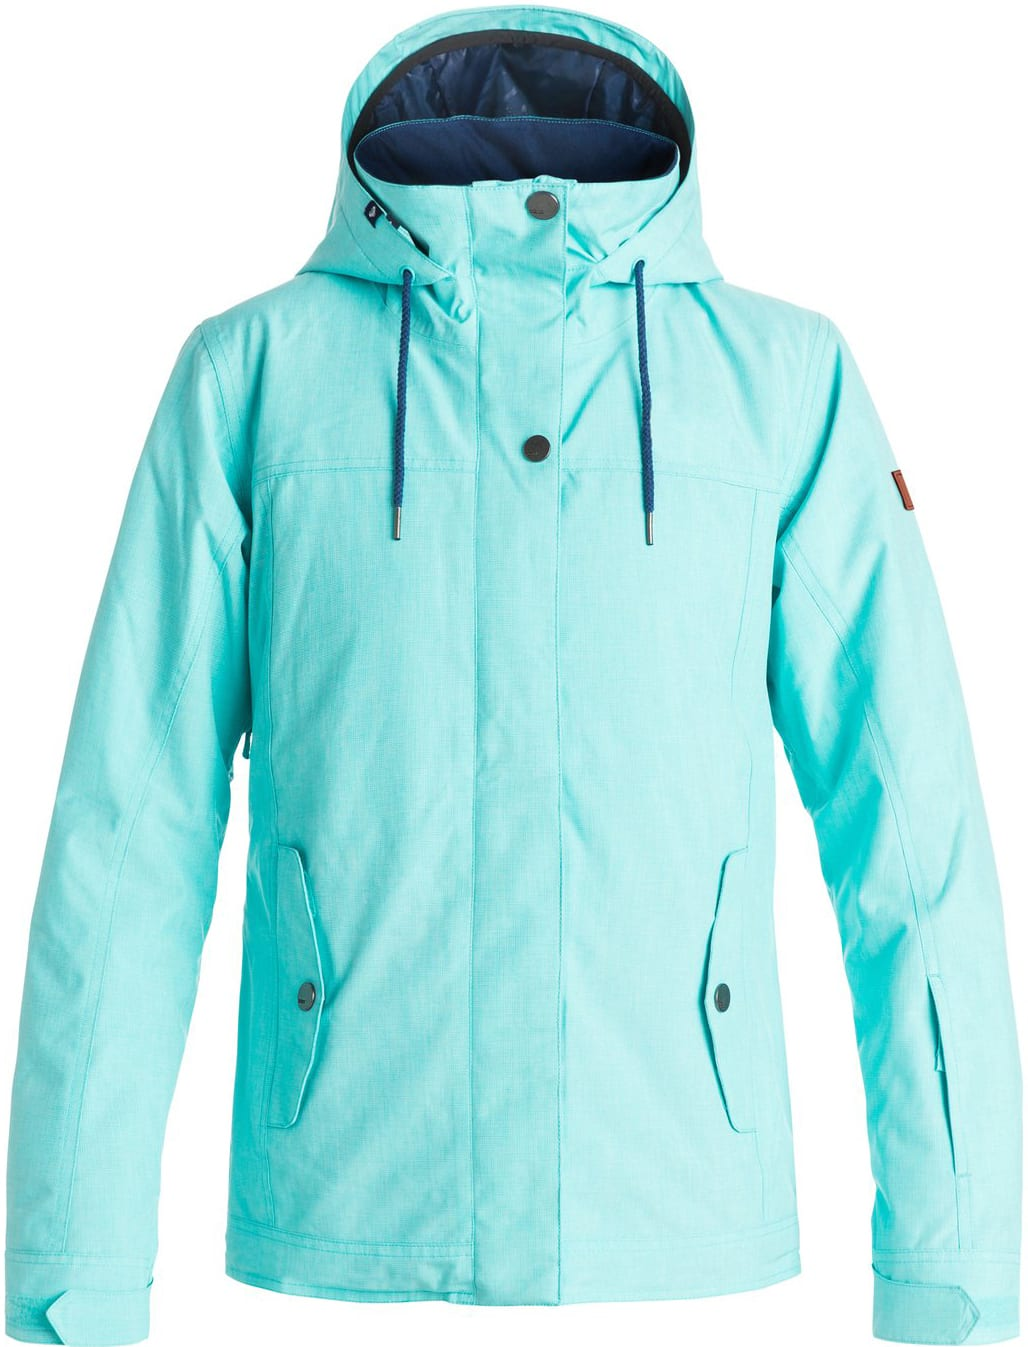 Womens Waterproof Jackets